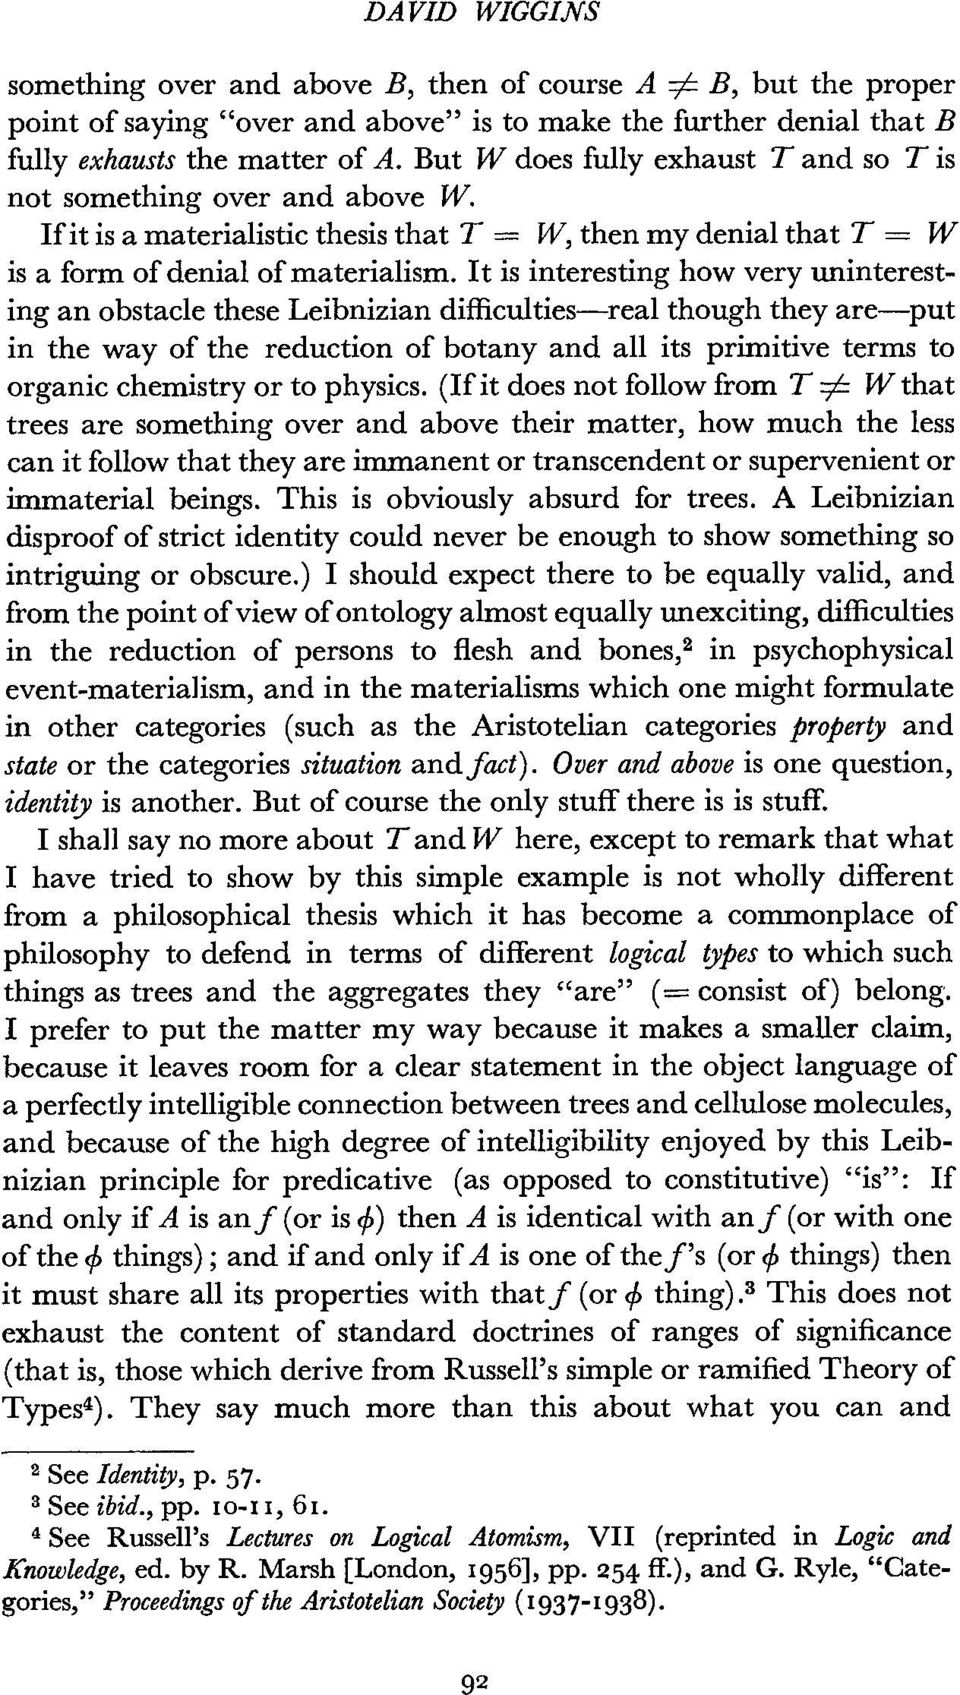 It is interesting how very uninteresting an obstacle these Leibnizian difficulties-real though they are-put in the way of the reduction of botany and all its primitive terms to organic chemistry or